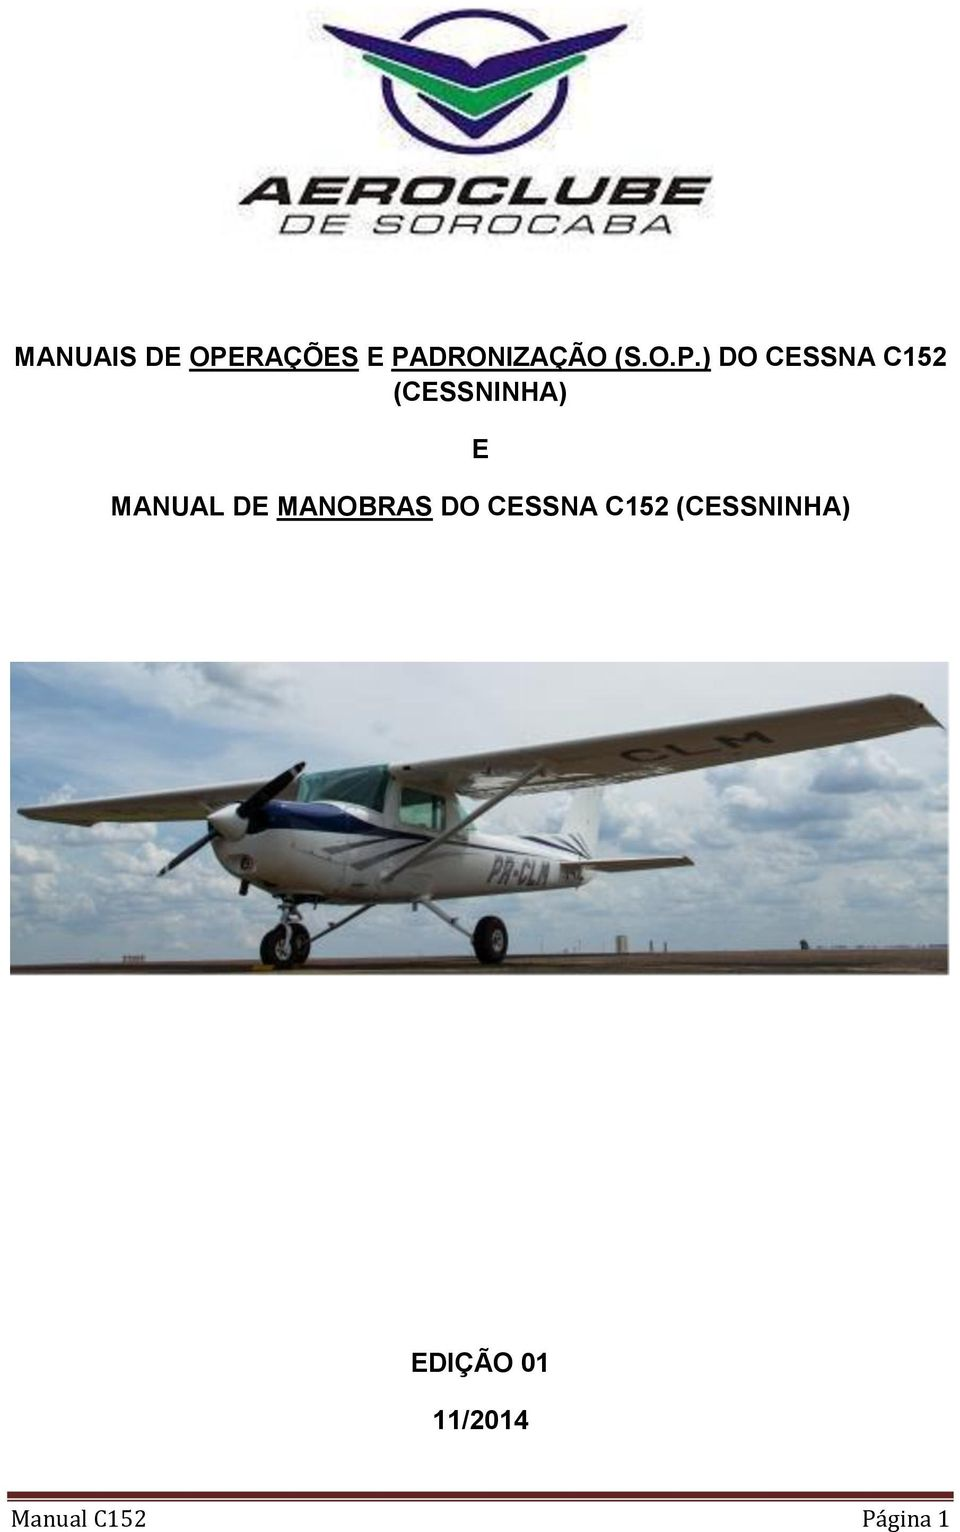 MANUAL DE MANOBRAS DO CESSNA C152